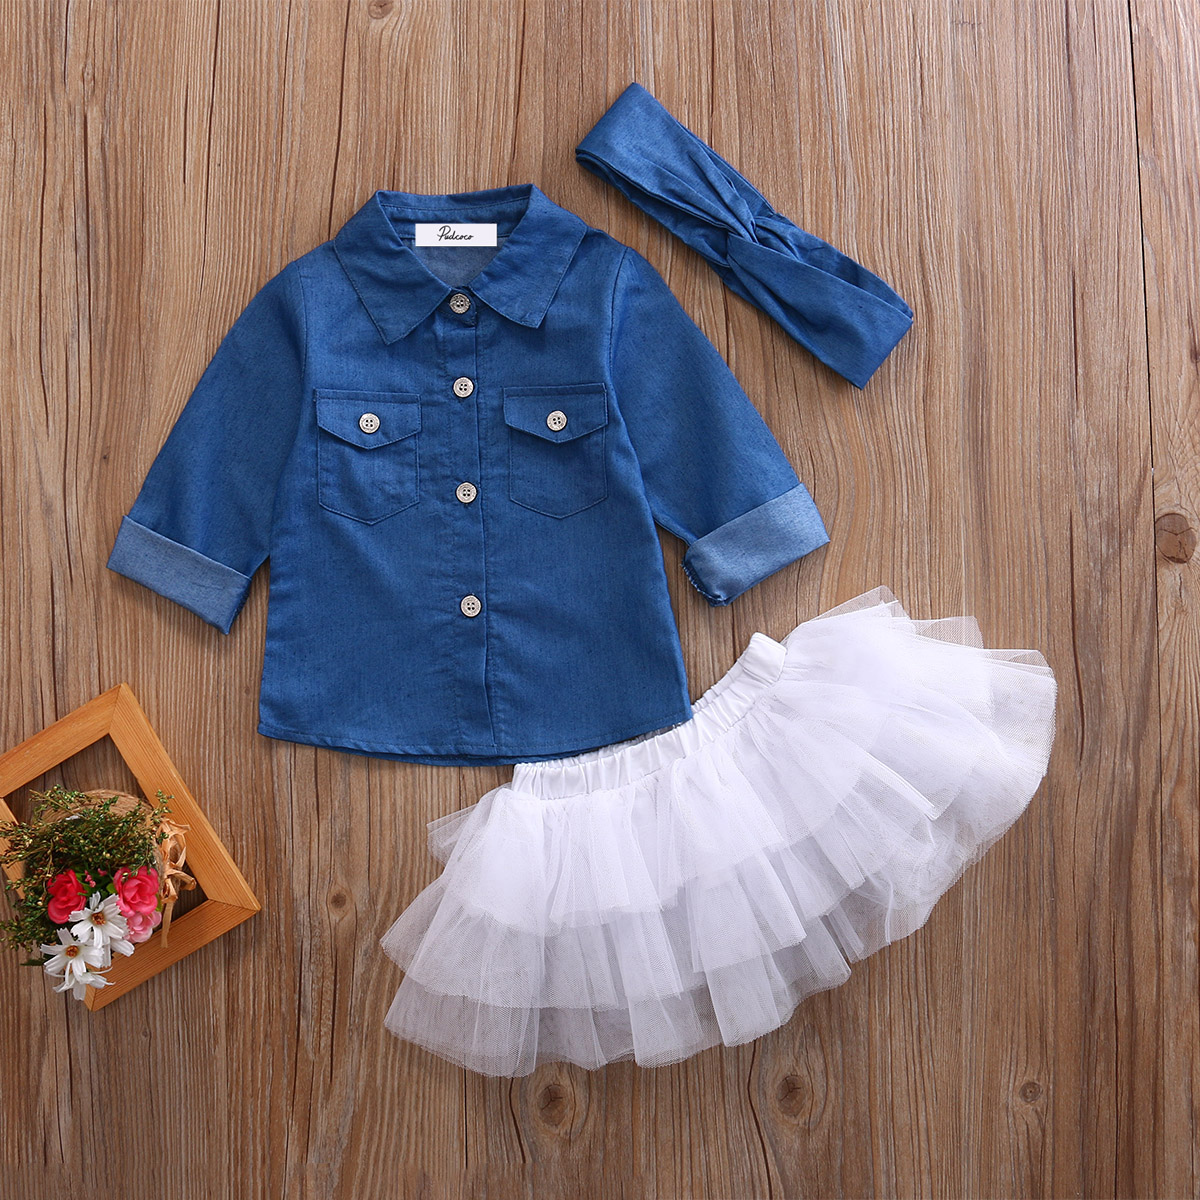 Kids Baby Girls Denim Tops T shirt+White Tutu Skirts+Headband 3pcs Outfits Clothes Set Summer Long Sleeve Children Clothing Sets clothing set kids baby girl short sleeve t shirt tutu floral skirt set summer outfits